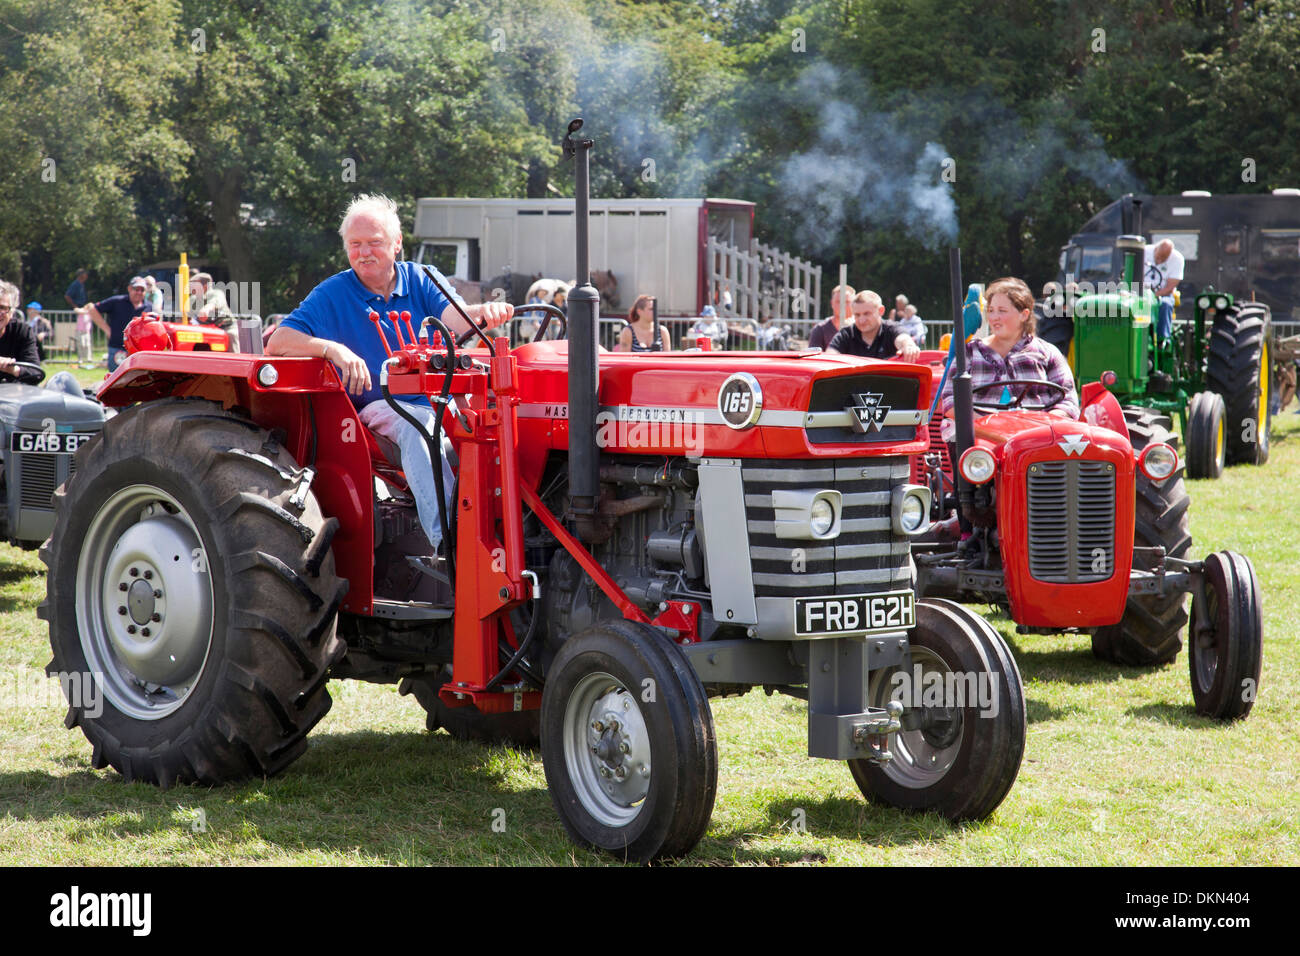 Massey Ferguson tractors at a vintage tractor show in the U.K. - Stock Image